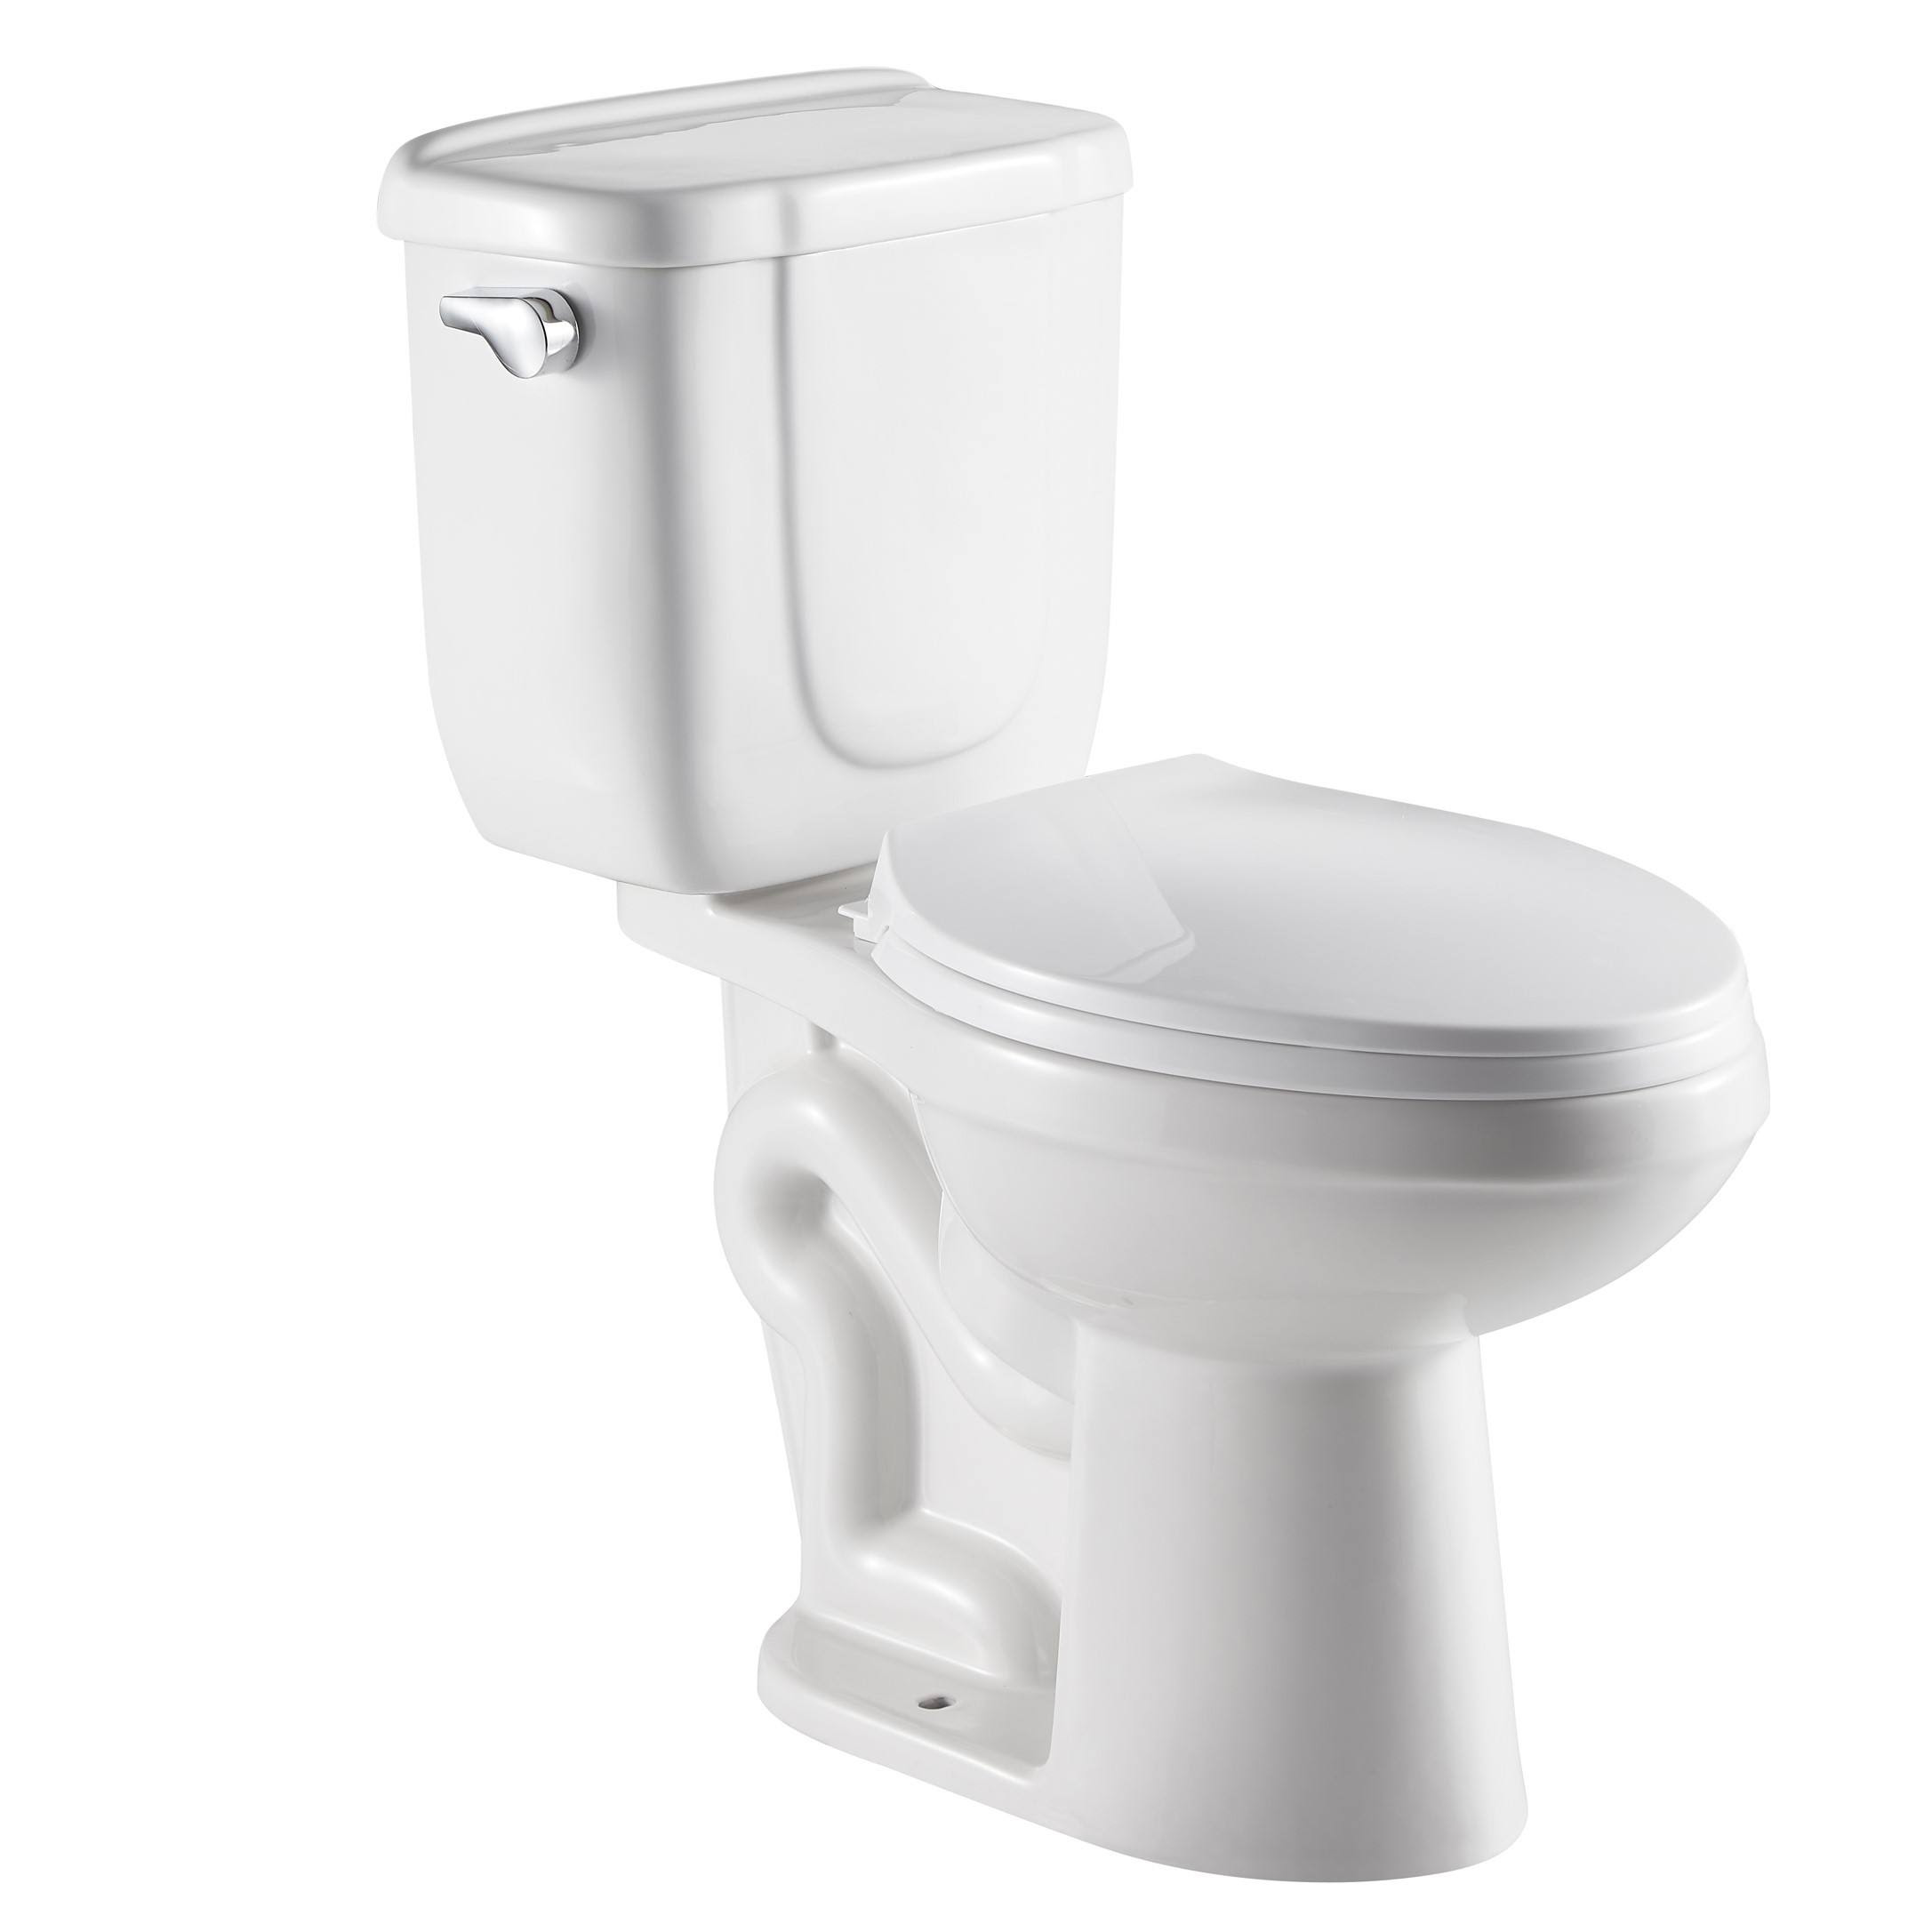 China Siphon Jet Flushing Water Closet China Siphon Jet Flushing Water Closet Manufacturers And Suppliers On Alibaba Com